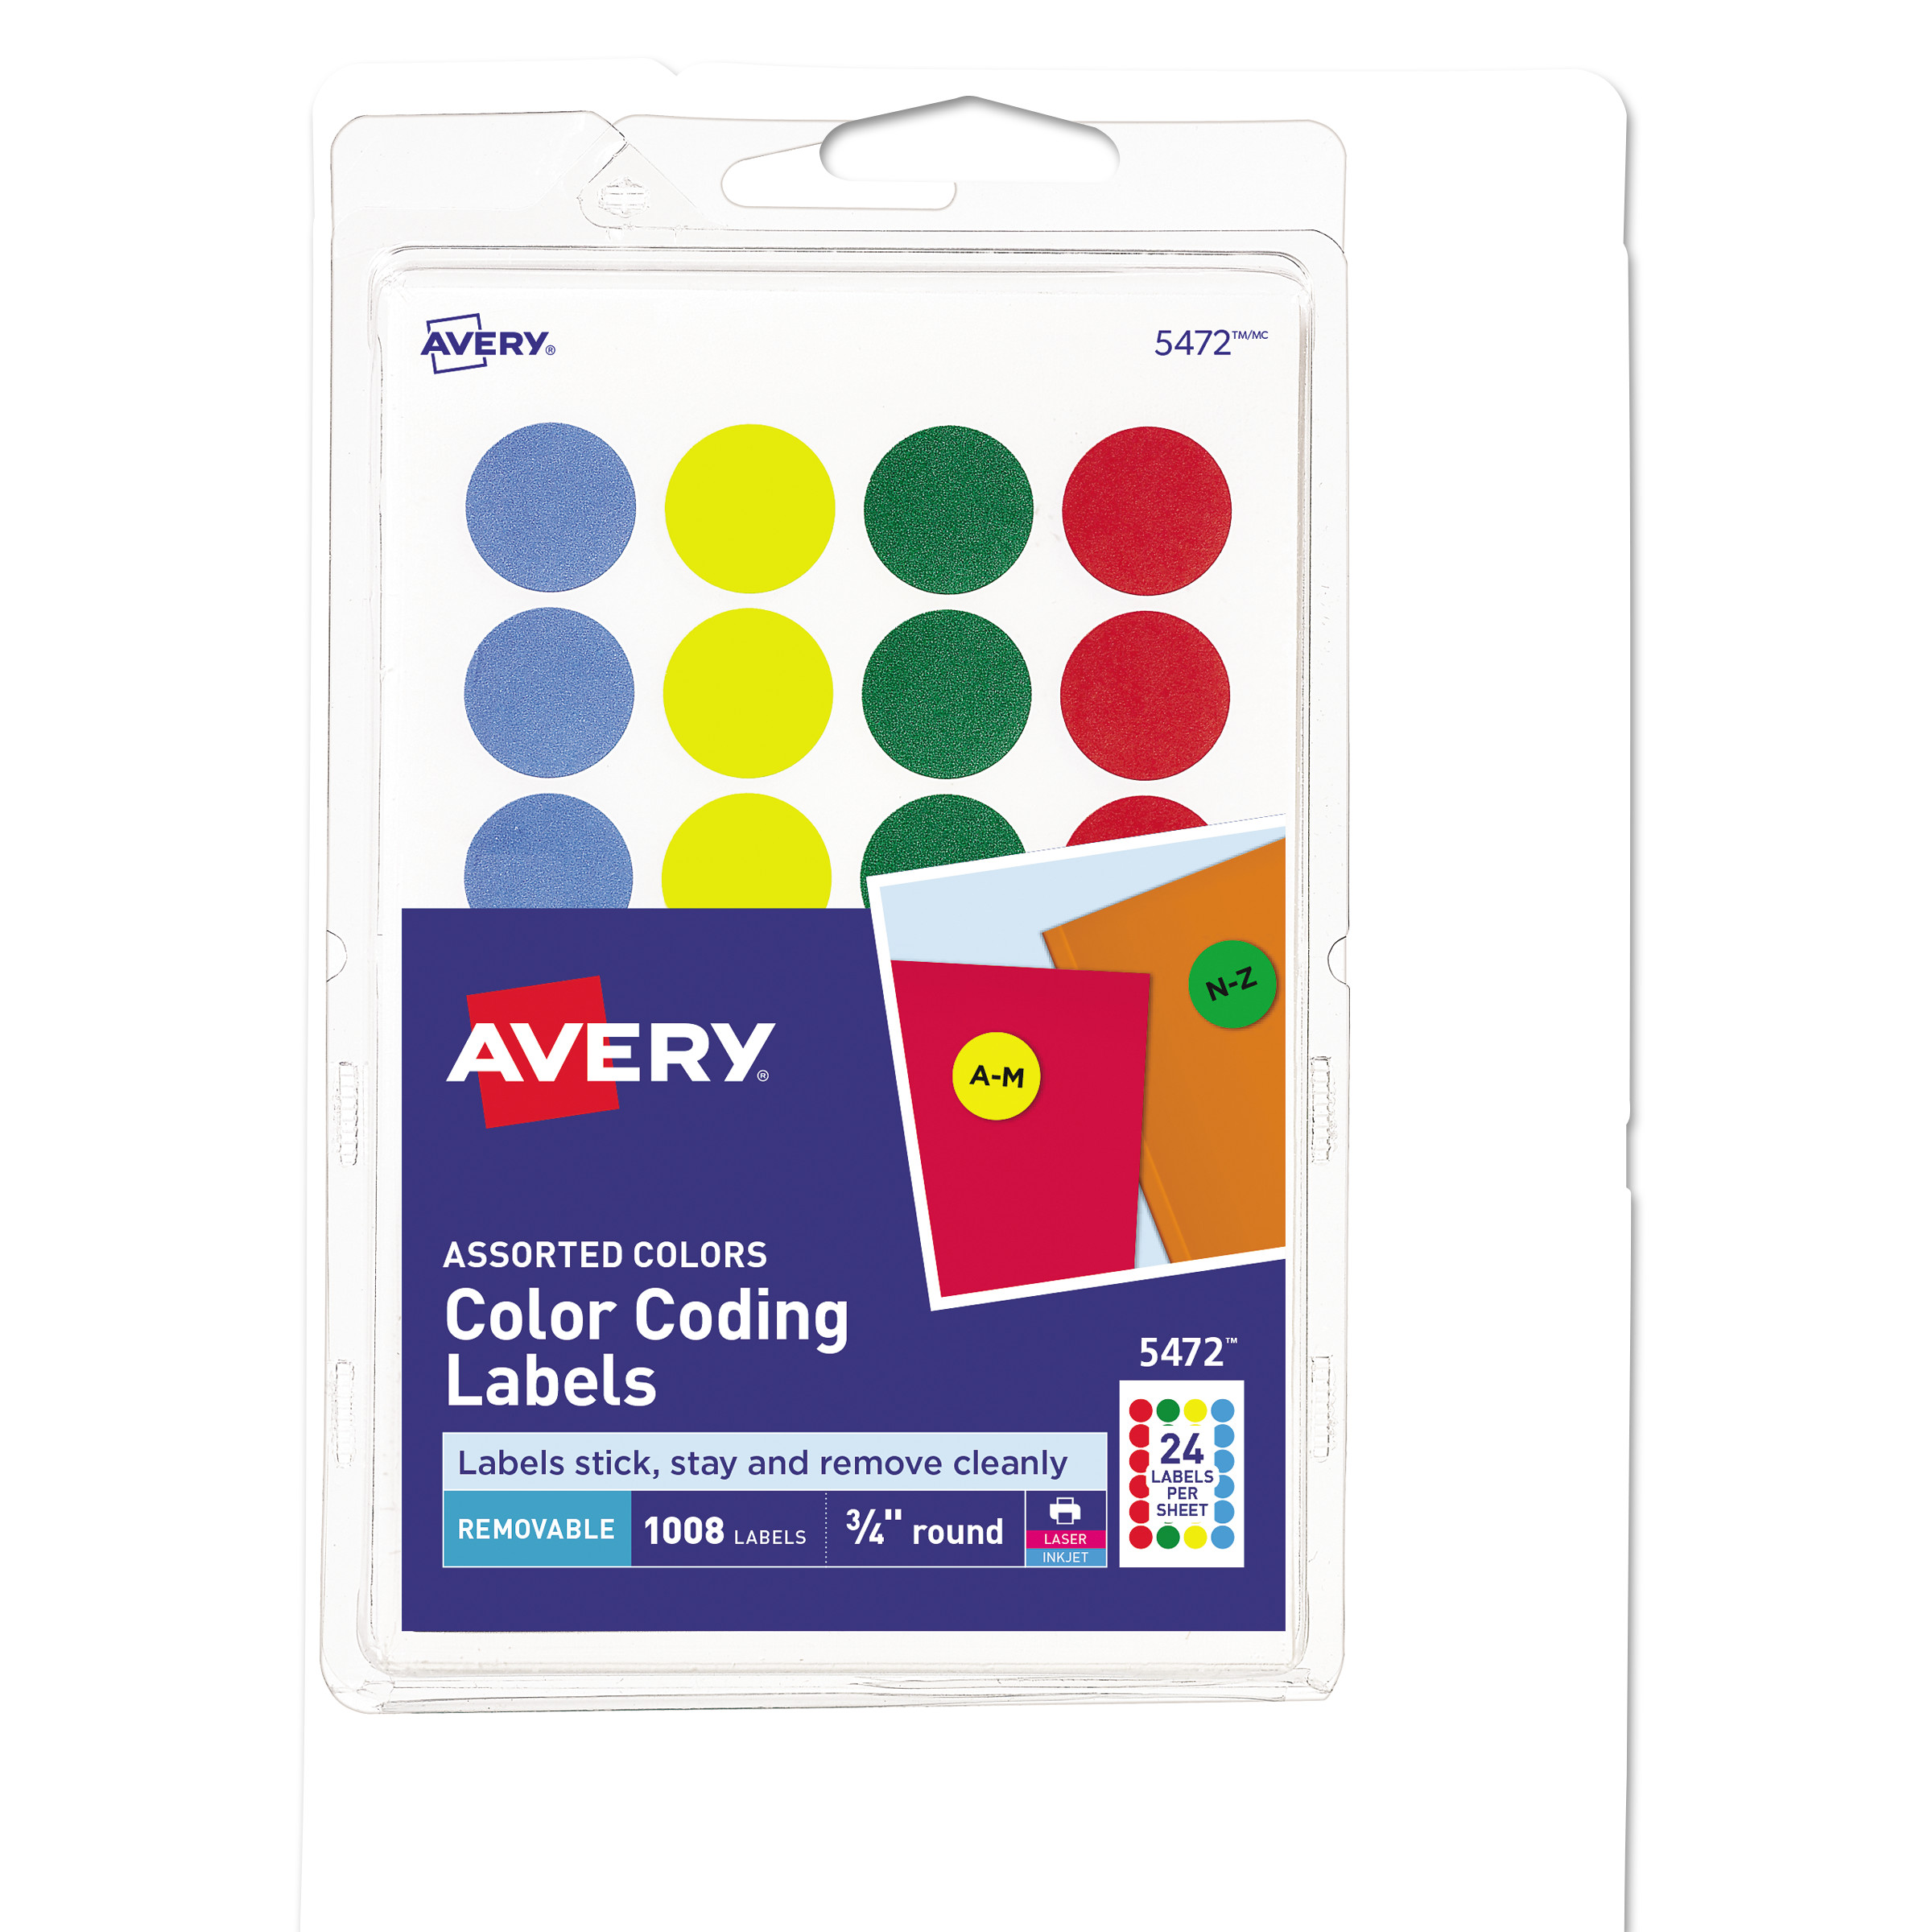 "Avery Printable Removable Color-Coding Labels, 3/4"" dia, Assorted, 1008/Pack"